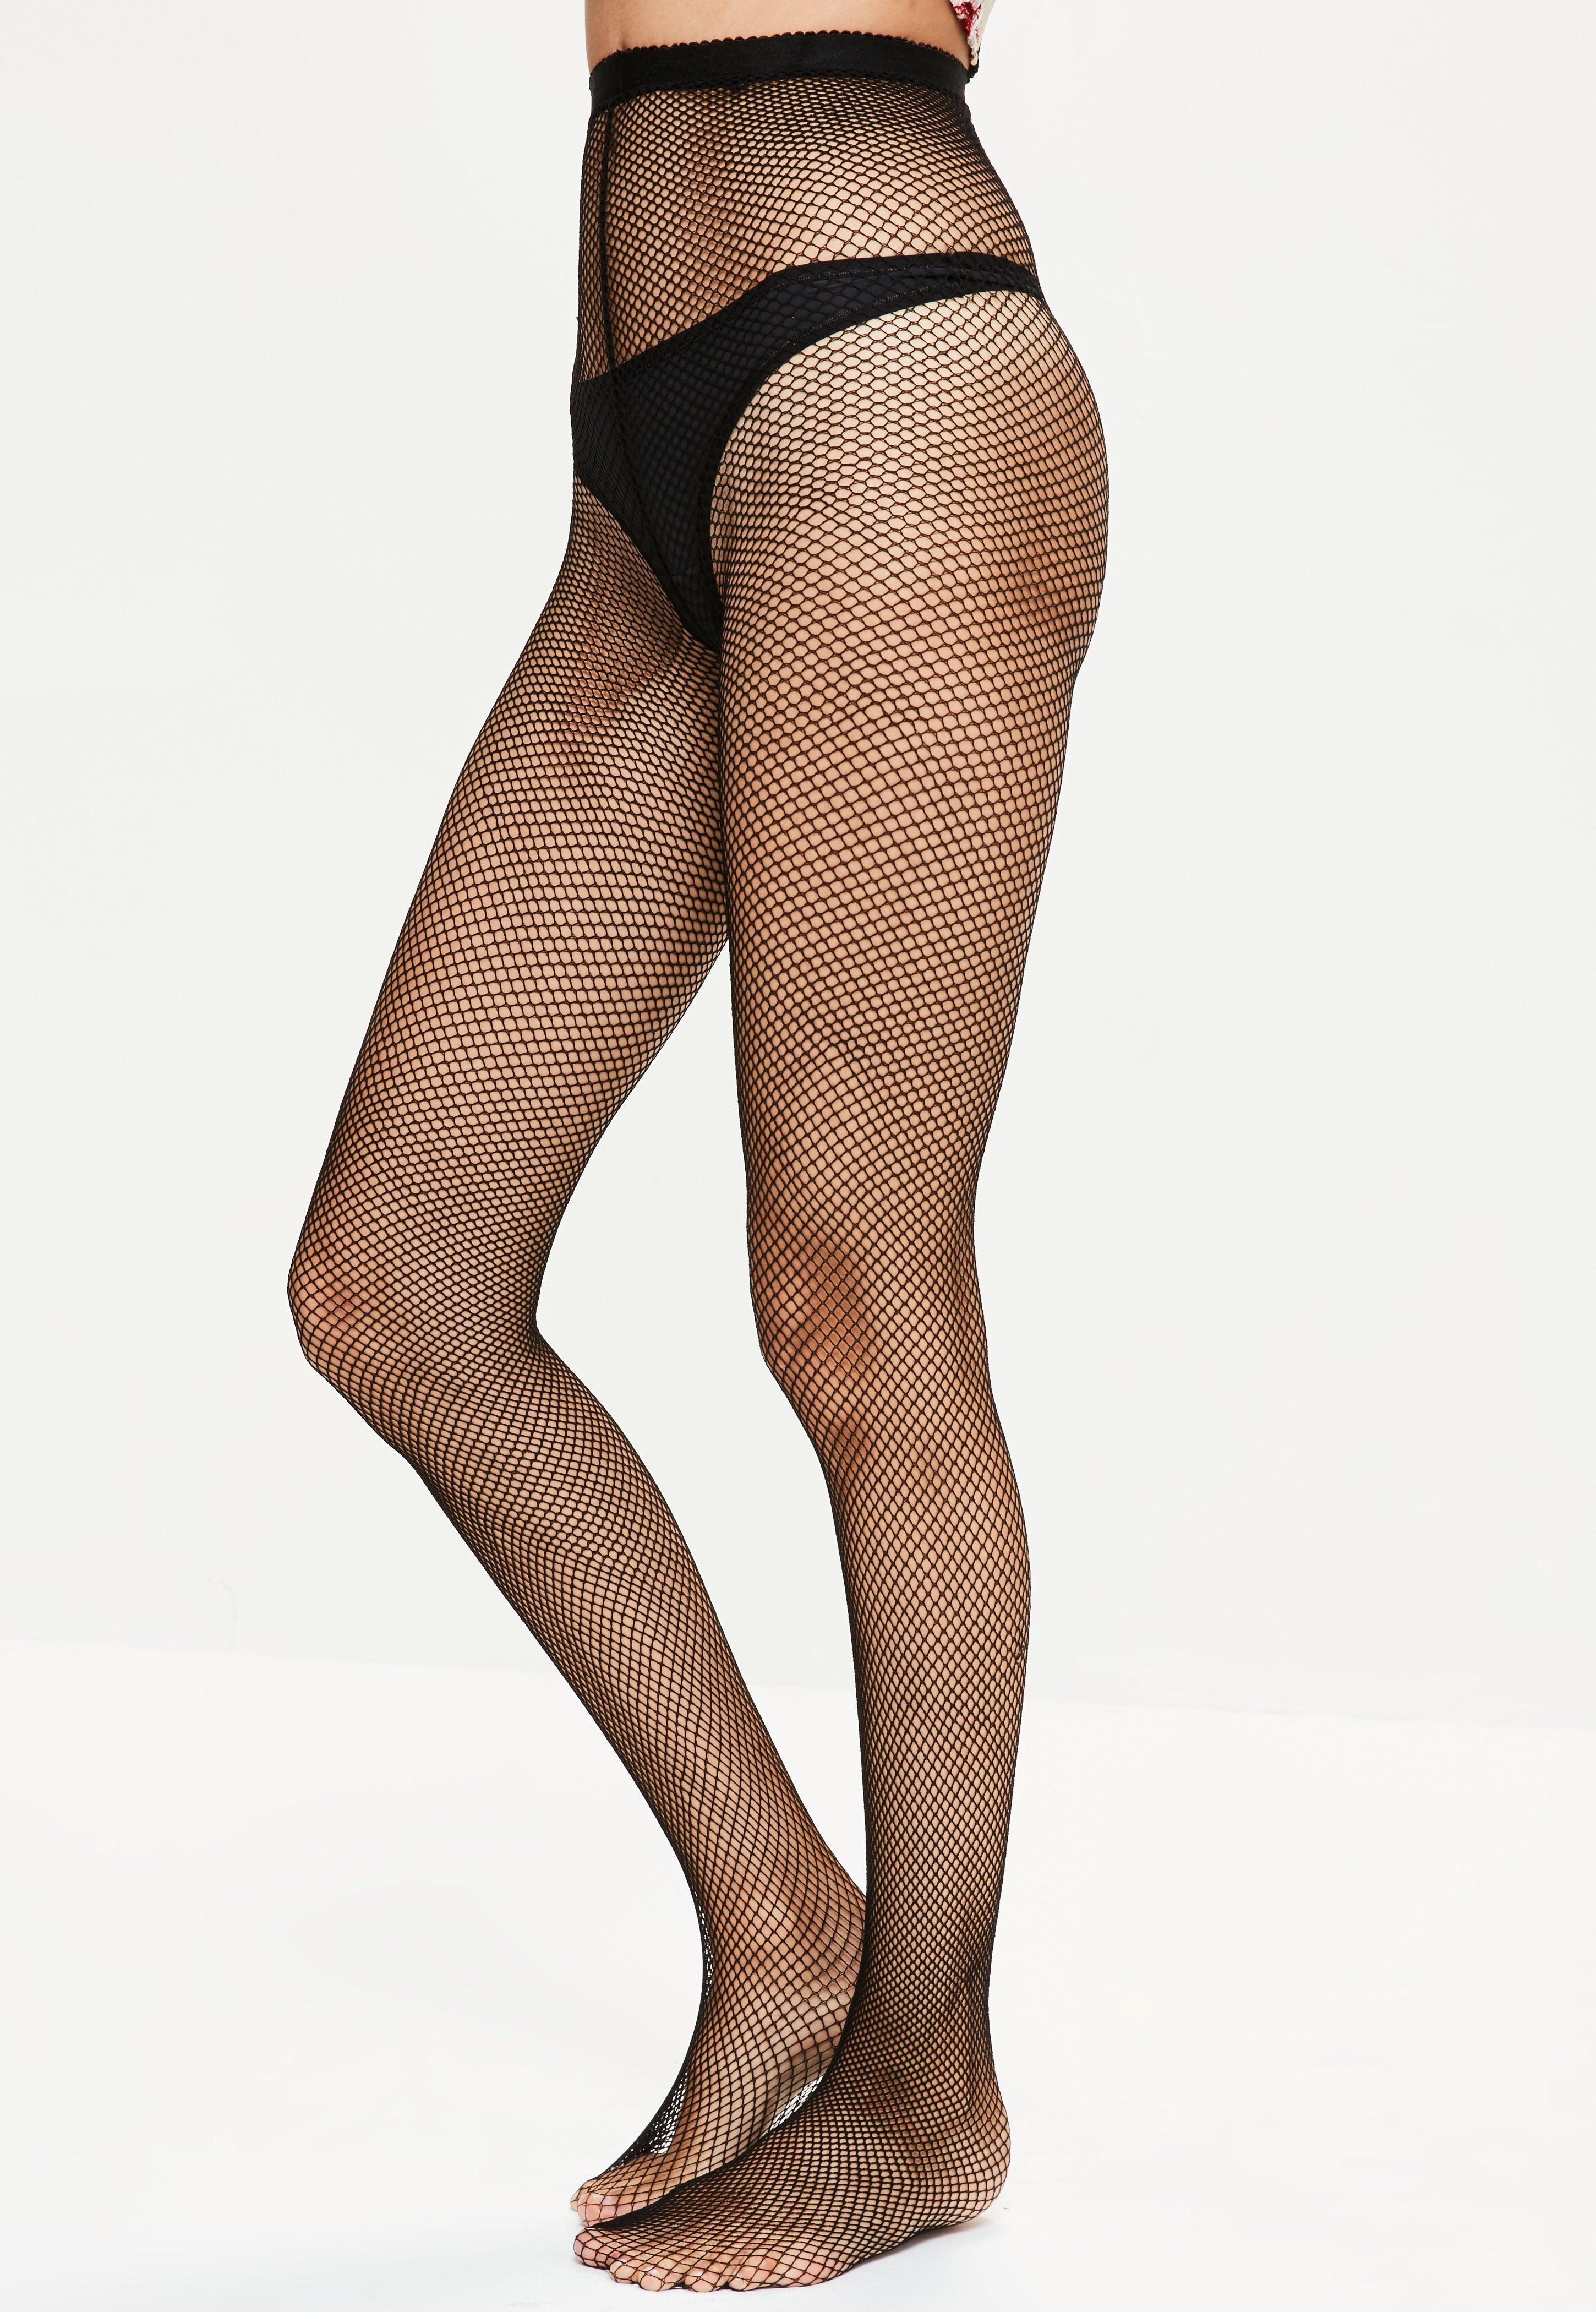 Missguided Black Elasticated Fishnet Tights in Black | Lyst